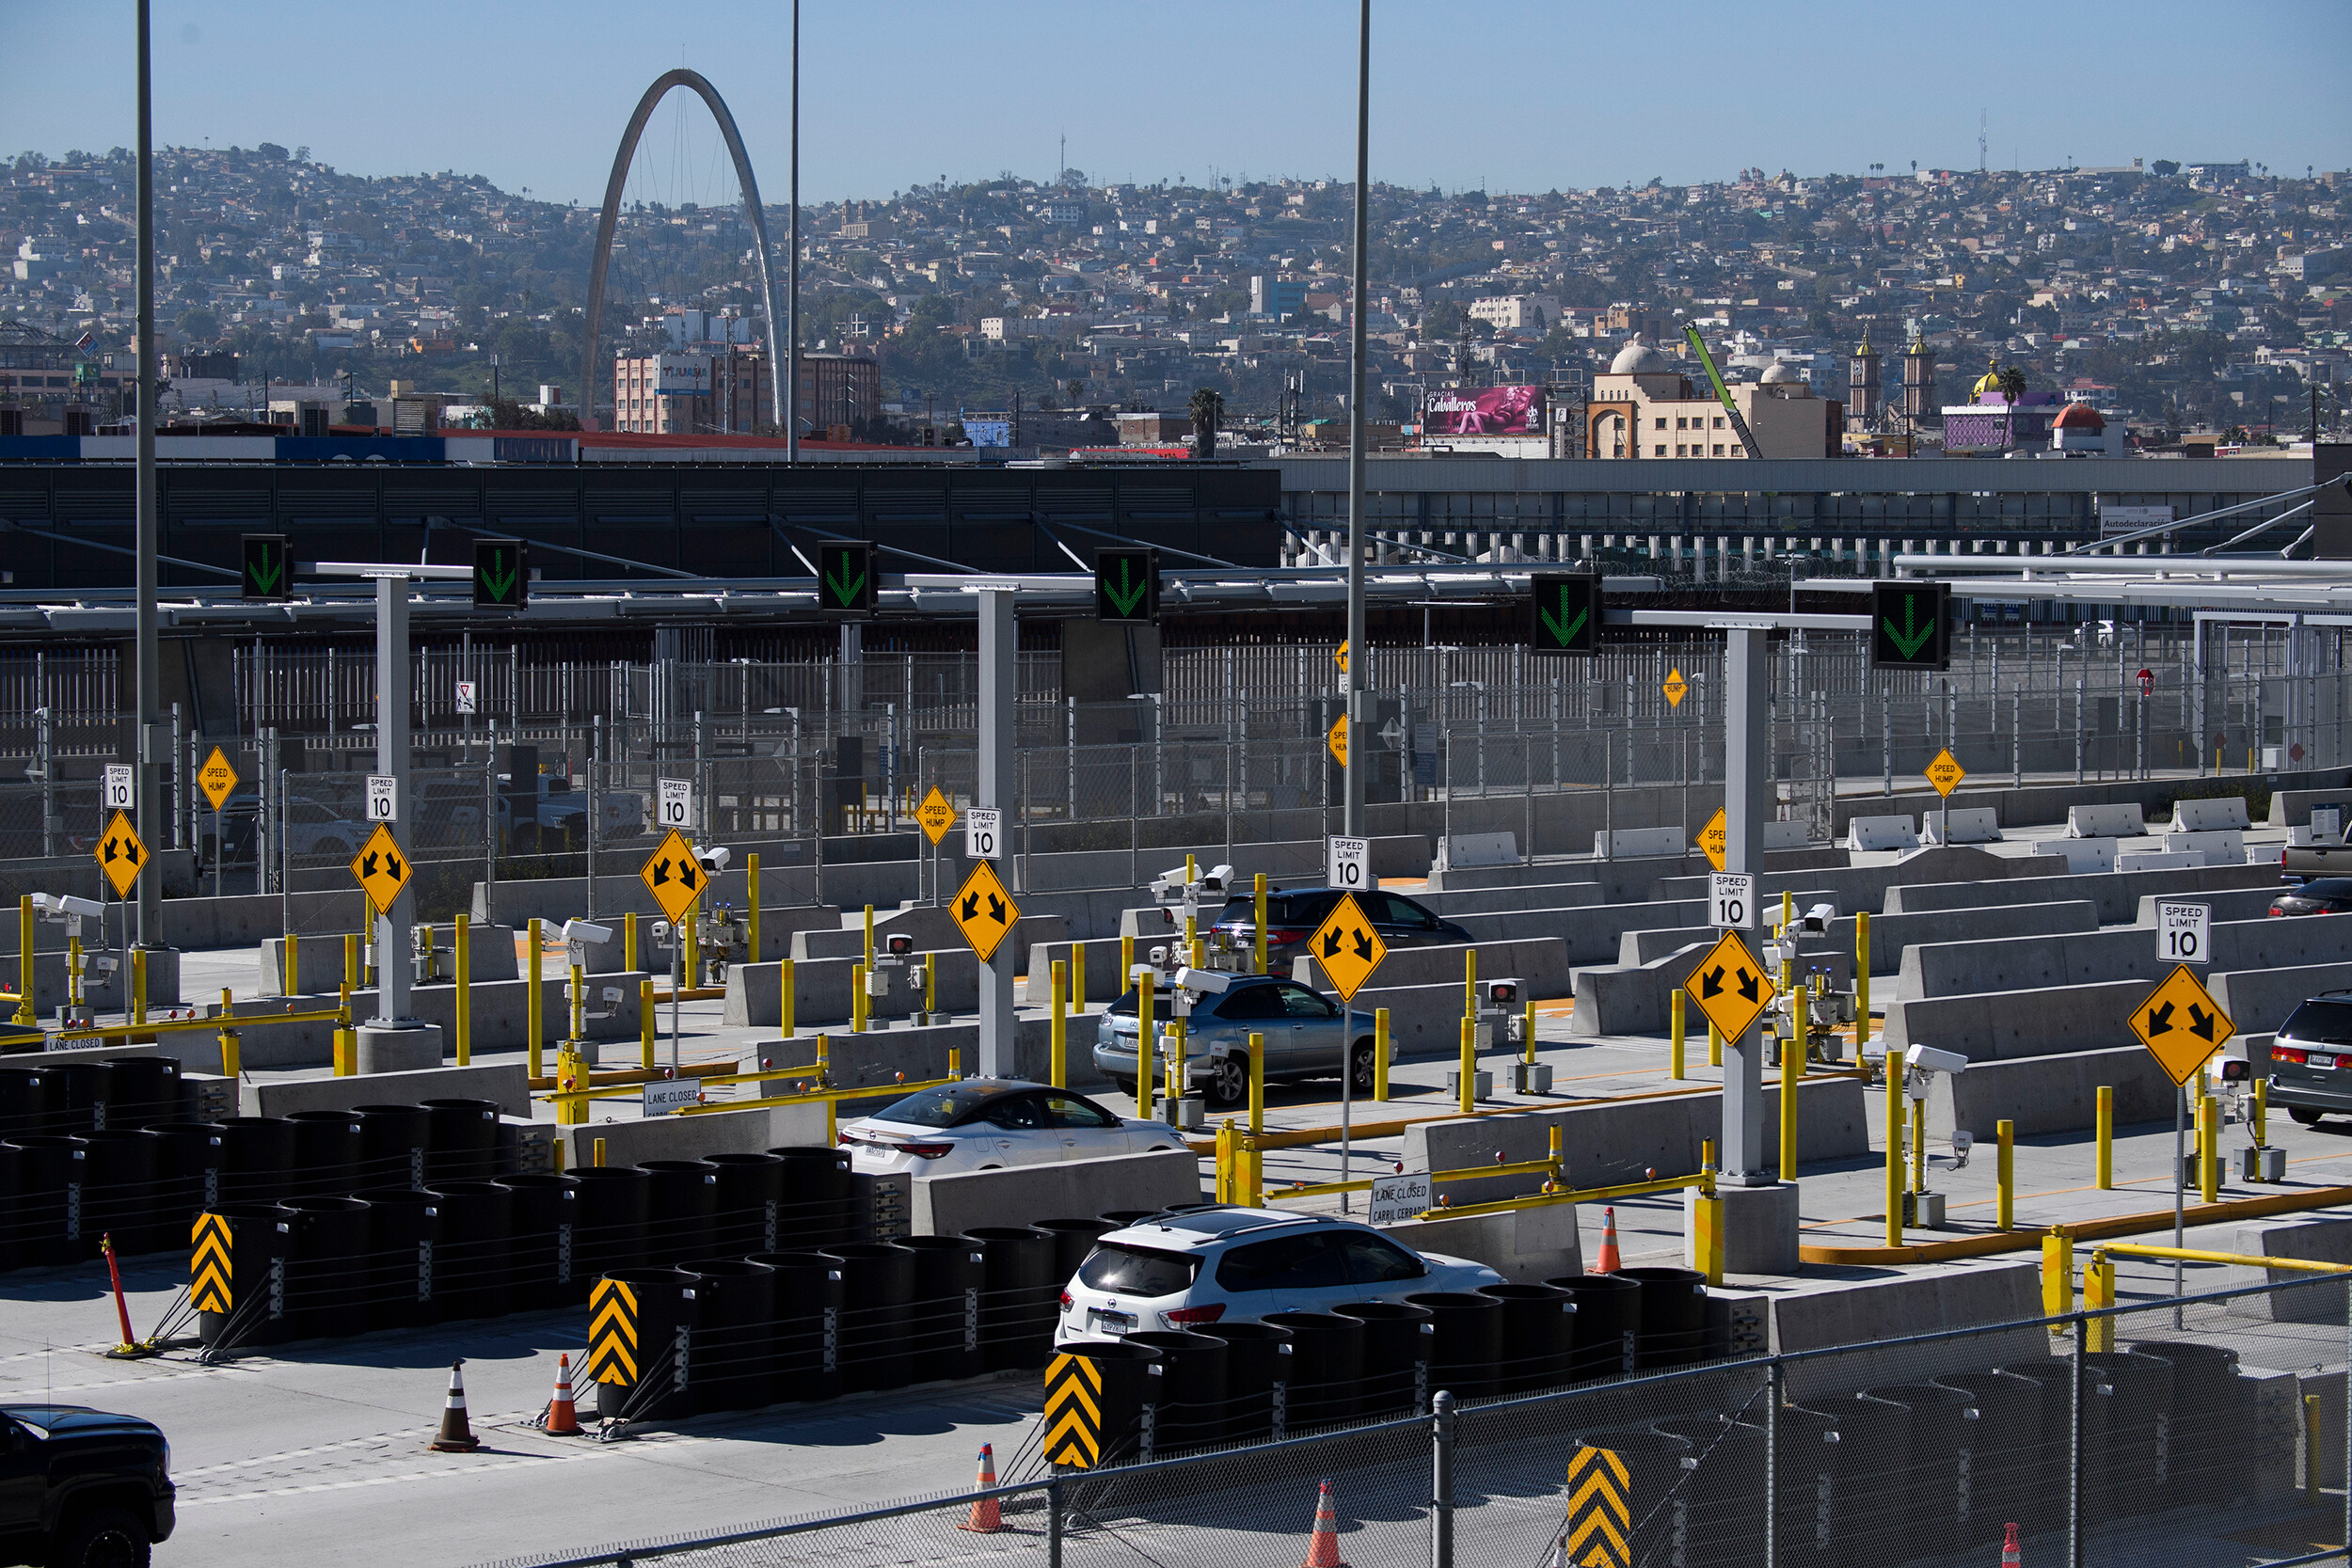 <i>Patrick T. Fallon/AFP/Getty Images</i><br/>Vehicles enter a checkpoint as they approach the Mexico border at the US Customs and Border Protection San Ysidro Port of Entry at the US- Mexico border in San Diego.